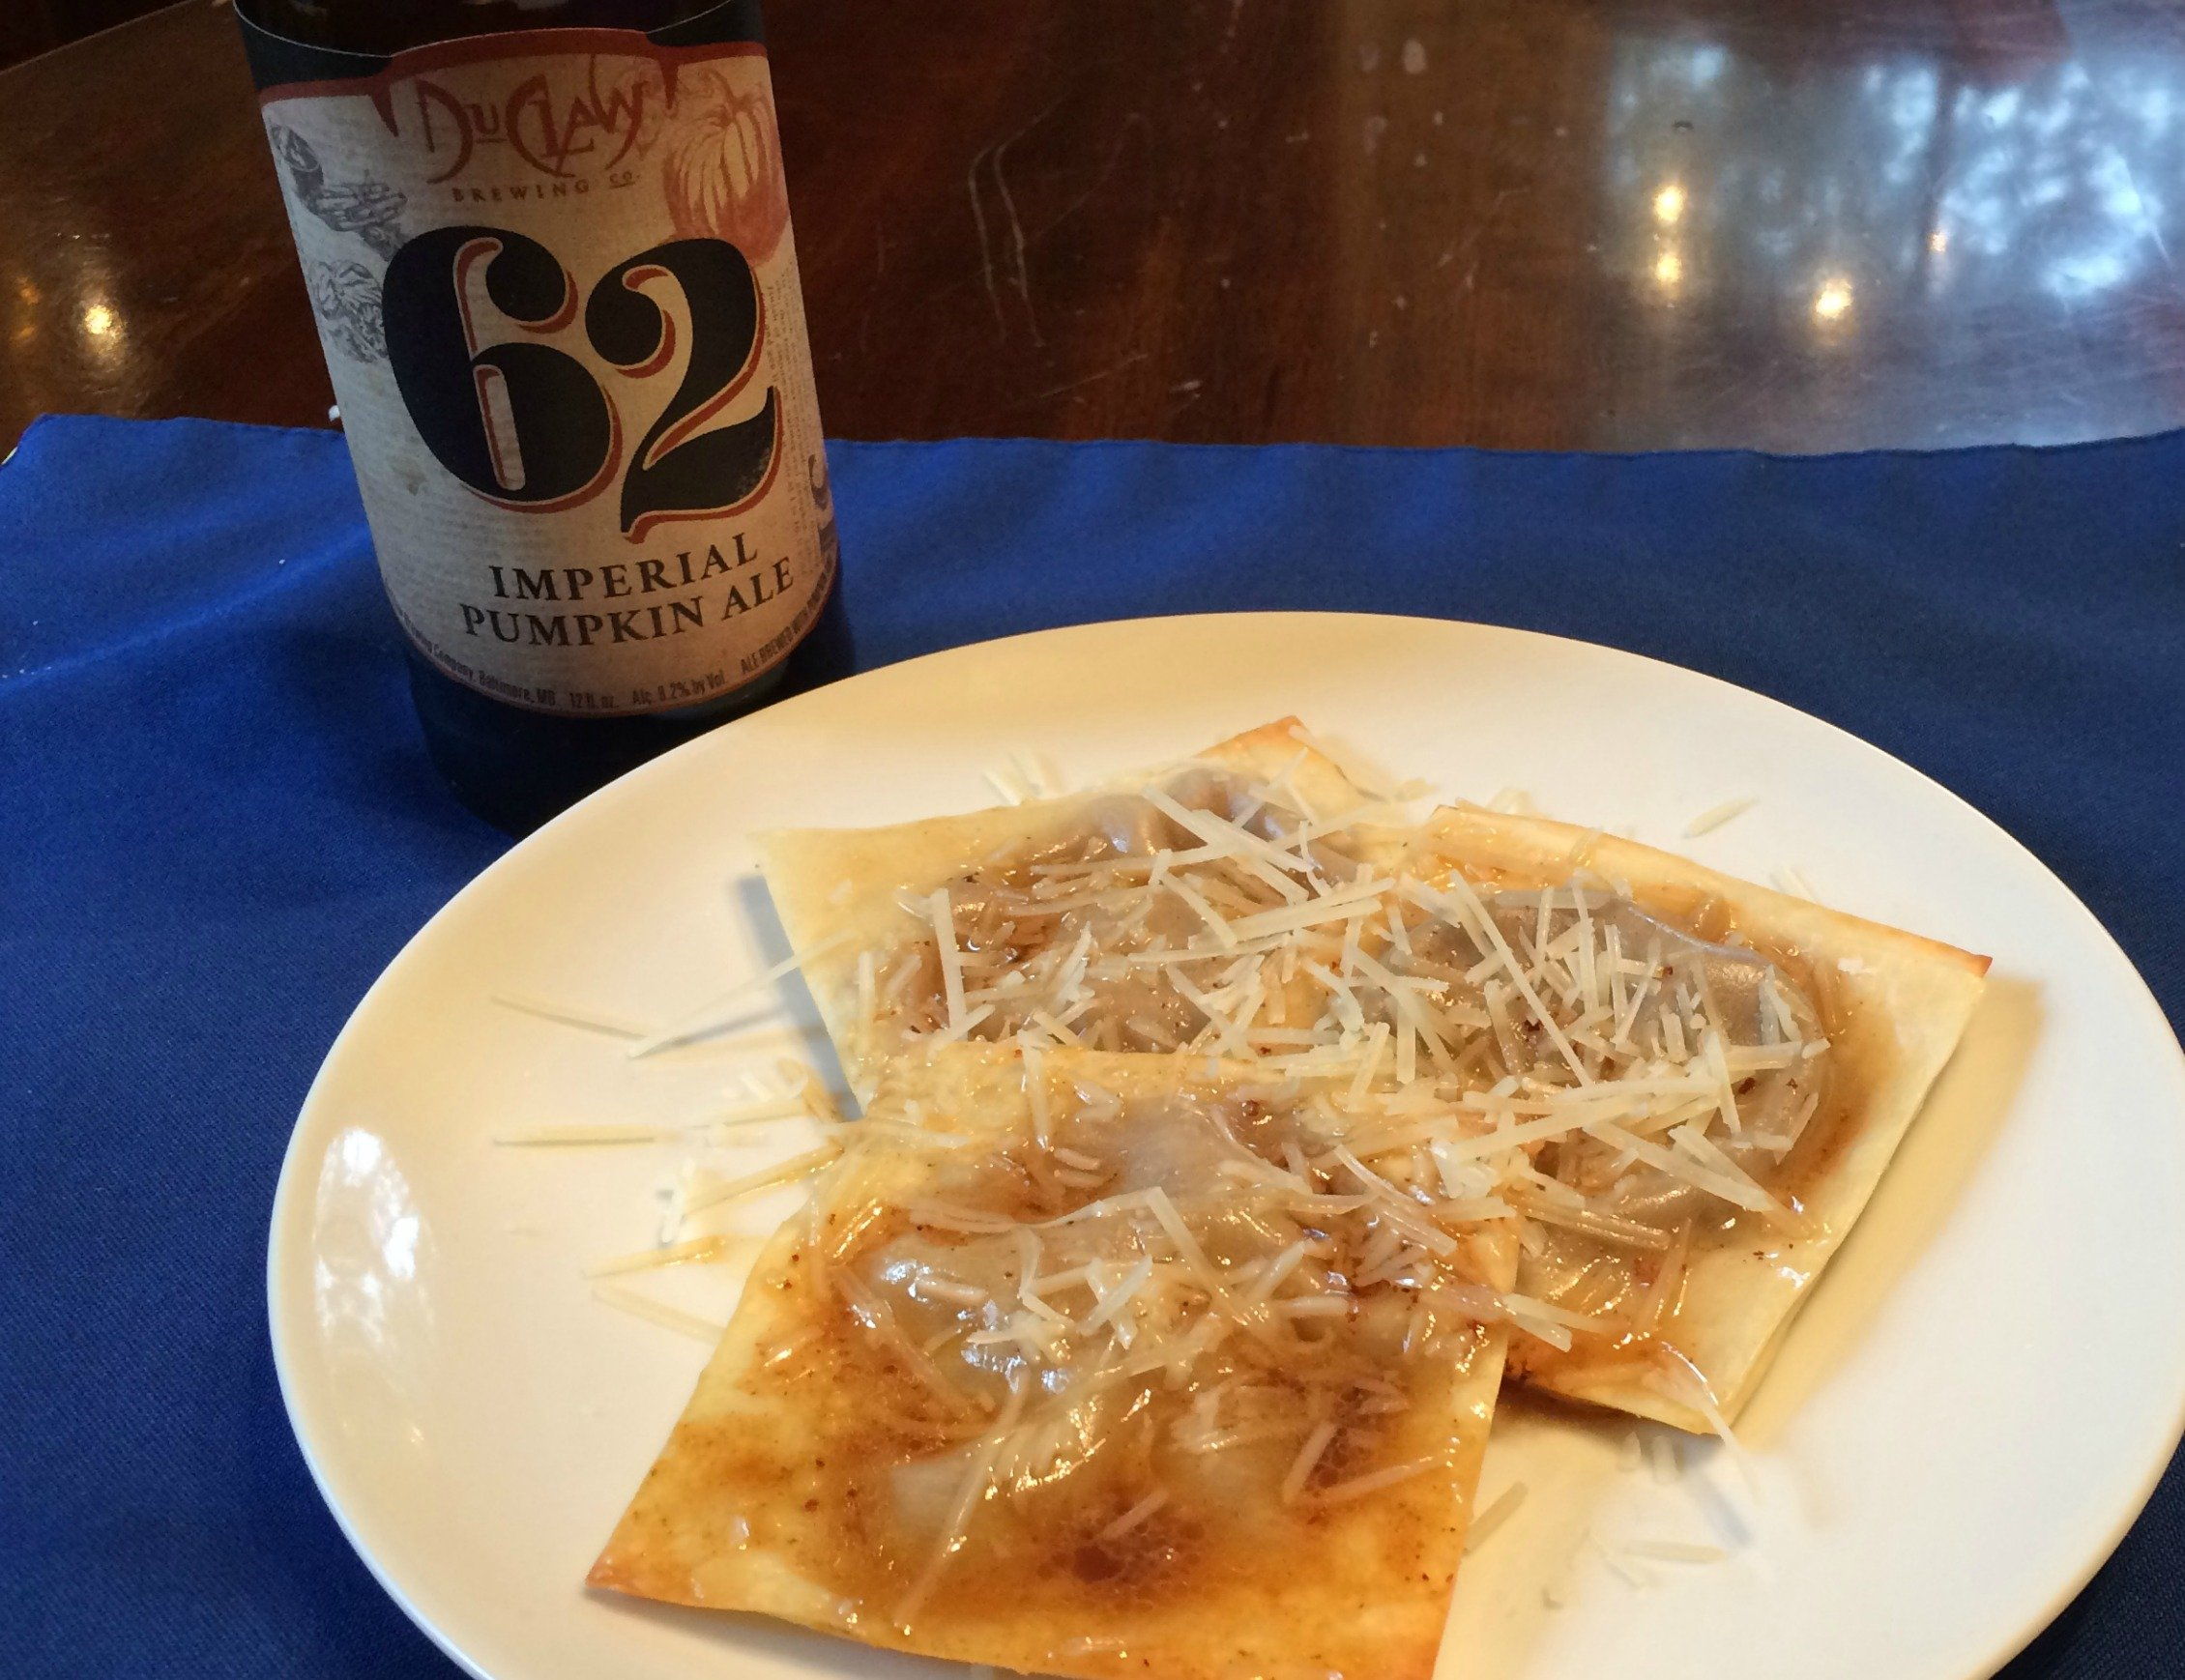 duclaw-62-imperial-pumpkin-ale-and-ravioli